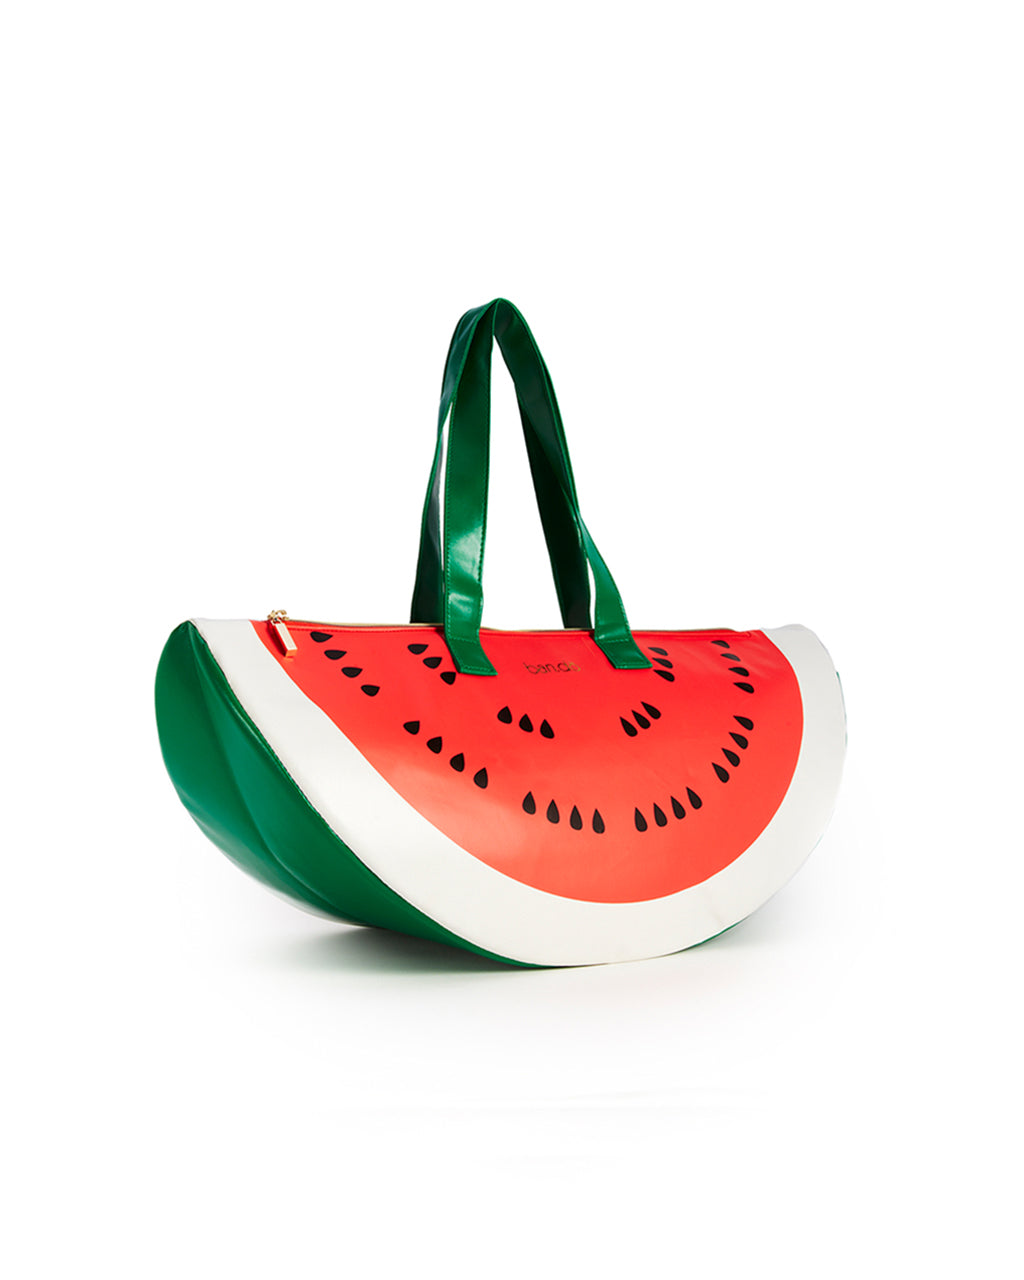 side view of watermelon cooler bag